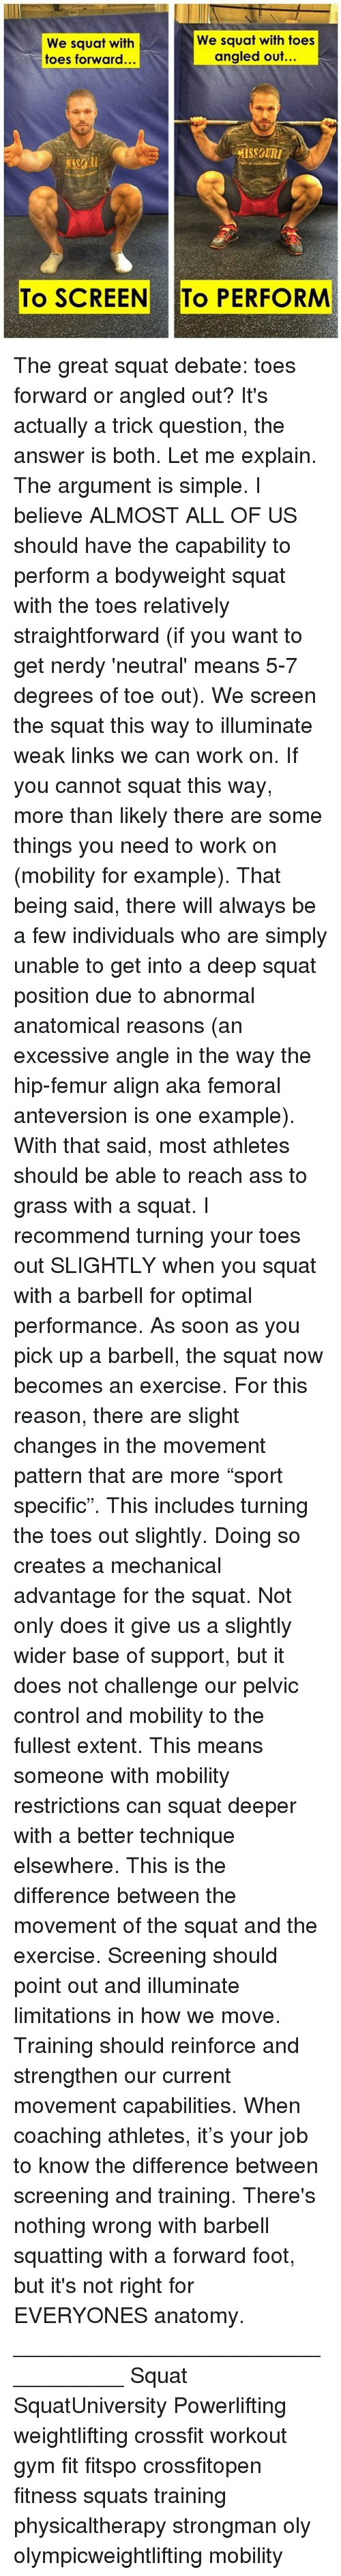 """optimal: We squat with toes  We squat with  angled out...  toes forward...  To SCREEN To PERFORM The great squat debate: toes forward or angled out? It's actually a trick question, the answer is both. Let me explain. The argument is simple. I believe ALMOST ALL OF US should have the capability to perform a bodyweight squat with the toes relatively straightforward (if you want to get nerdy 'neutral' means 5-7 degrees of toe out). We screen the squat this way to illuminate weak links we can work on. If you cannot squat this way, more than likely there are some things you need to work on (mobility for example). That being said, there will always be a few individuals who are simply unable to get into a deep squat position due to abnormal anatomical reasons (an excessive angle in the way the hip-femur align aka femoral anteversion is one example). With that said, most athletes should be able to reach ass to grass with a squat. I recommend turning your toes out SLIGHTLY when you squat with a barbell for optimal performance. As soon as you pick up a barbell, the squat now becomes an exercise. For this reason, there are slight changes in the movement pattern that are more """"sport specific"""". This includes turning the toes out slightly. Doing so creates a mechanical advantage for the squat. Not only does it give us a slightly wider base of support, but it does not challenge our pelvic control and mobility to the fullest extent. This means someone with mobility restrictions can squat deeper with a better technique elsewhere. This is the difference between the movement of the squat and the exercise. Screening should point out and illuminate limitations in how we move. Training should reinforce and strengthen our current movement capabilities. When coaching athletes, it's your job to know the difference between screening and training. There's nothing wrong with barbell squatting with a forward foot, but it's not right for EVERYONES anatomy. __________________________________ Squa"""